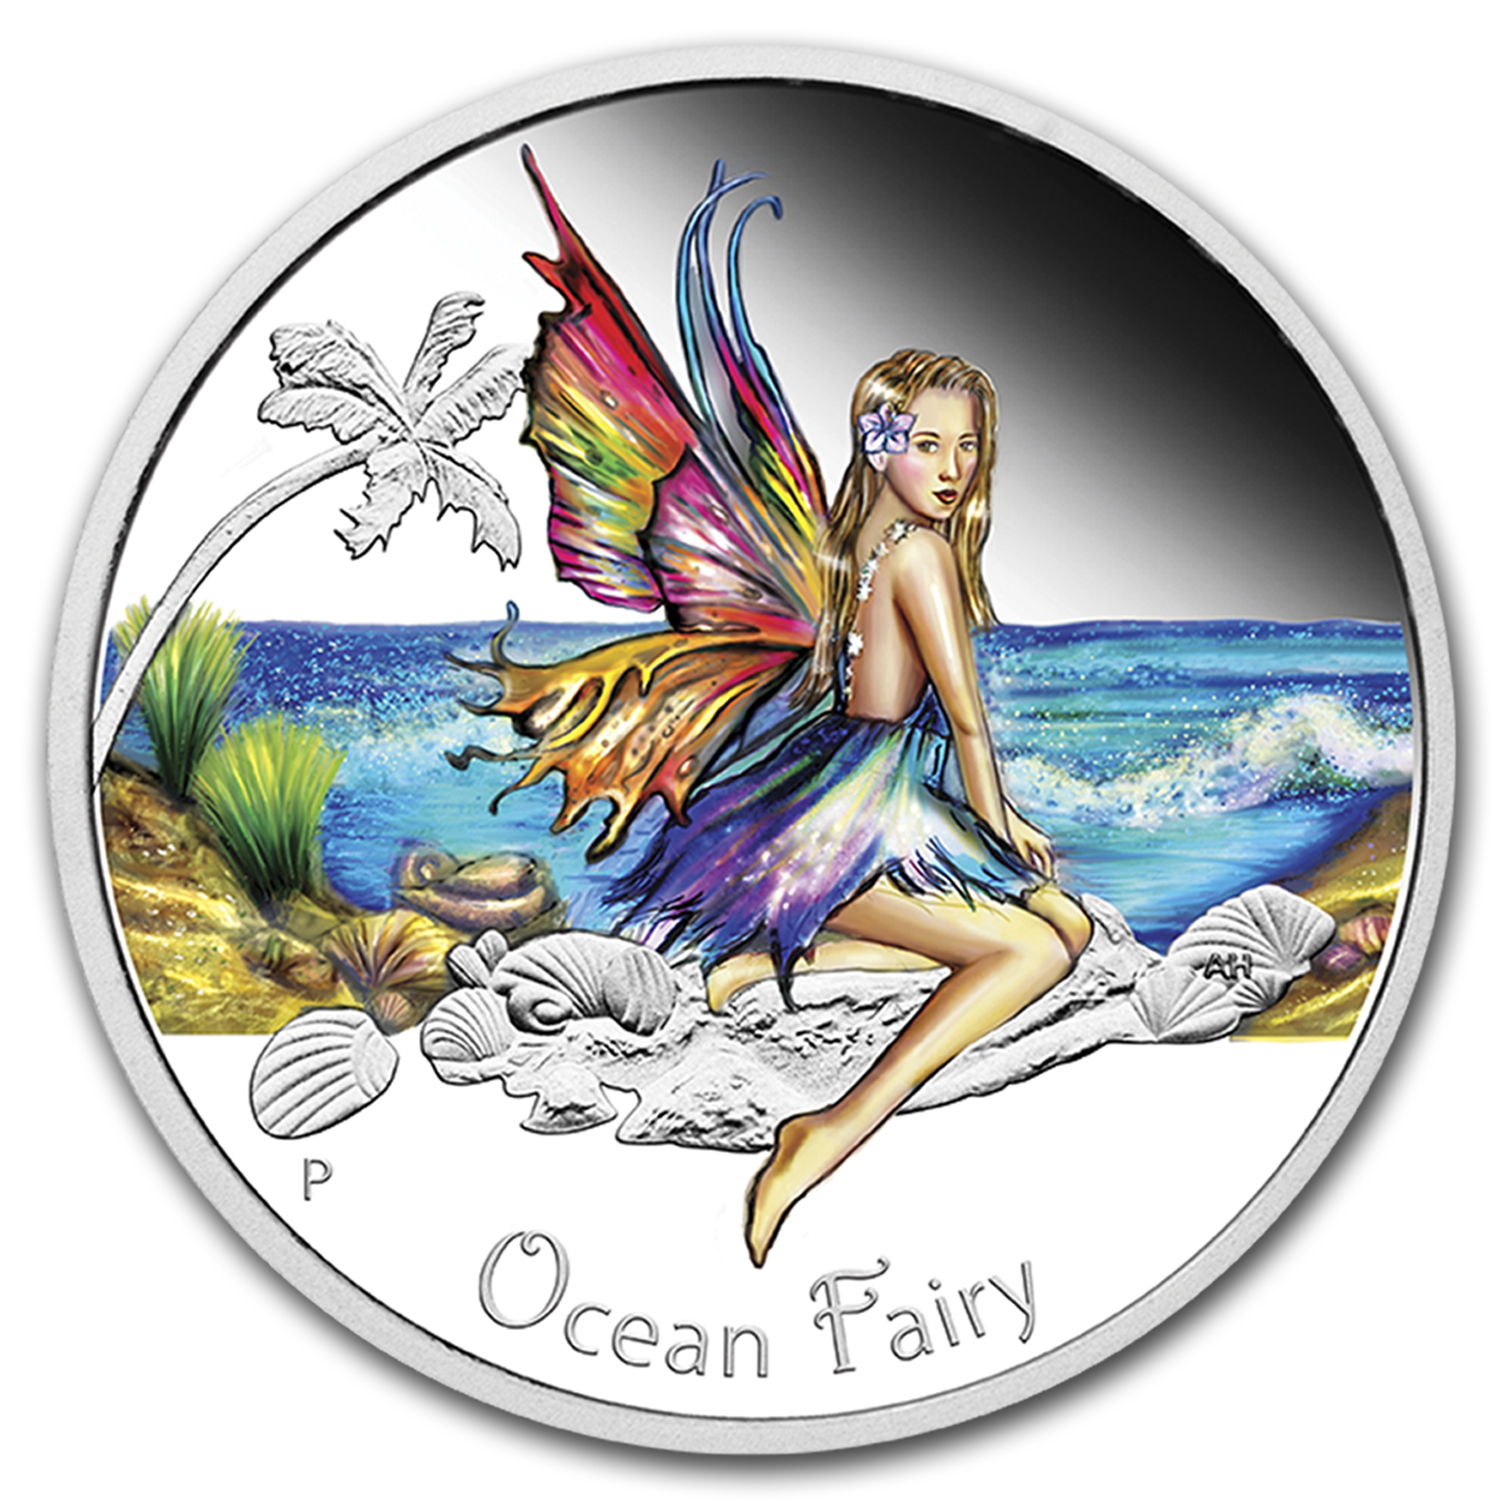 2016 Australia 1/2 oz Silver Ocean Fairy Proof